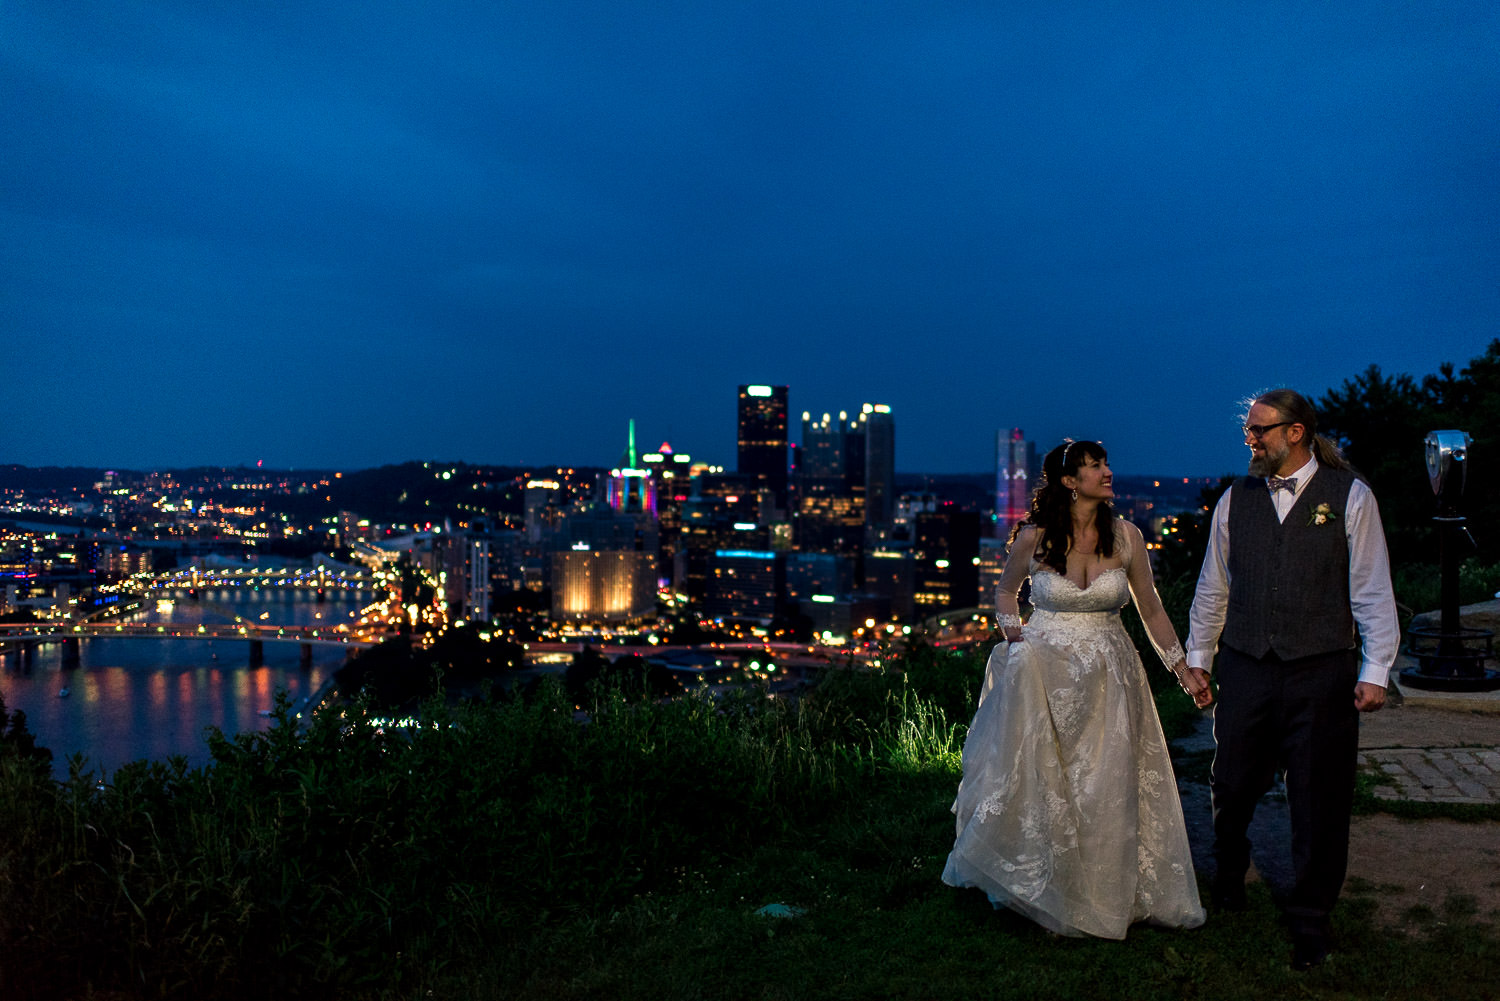 night portrait of bride and groom with city of Pittsburgh in background